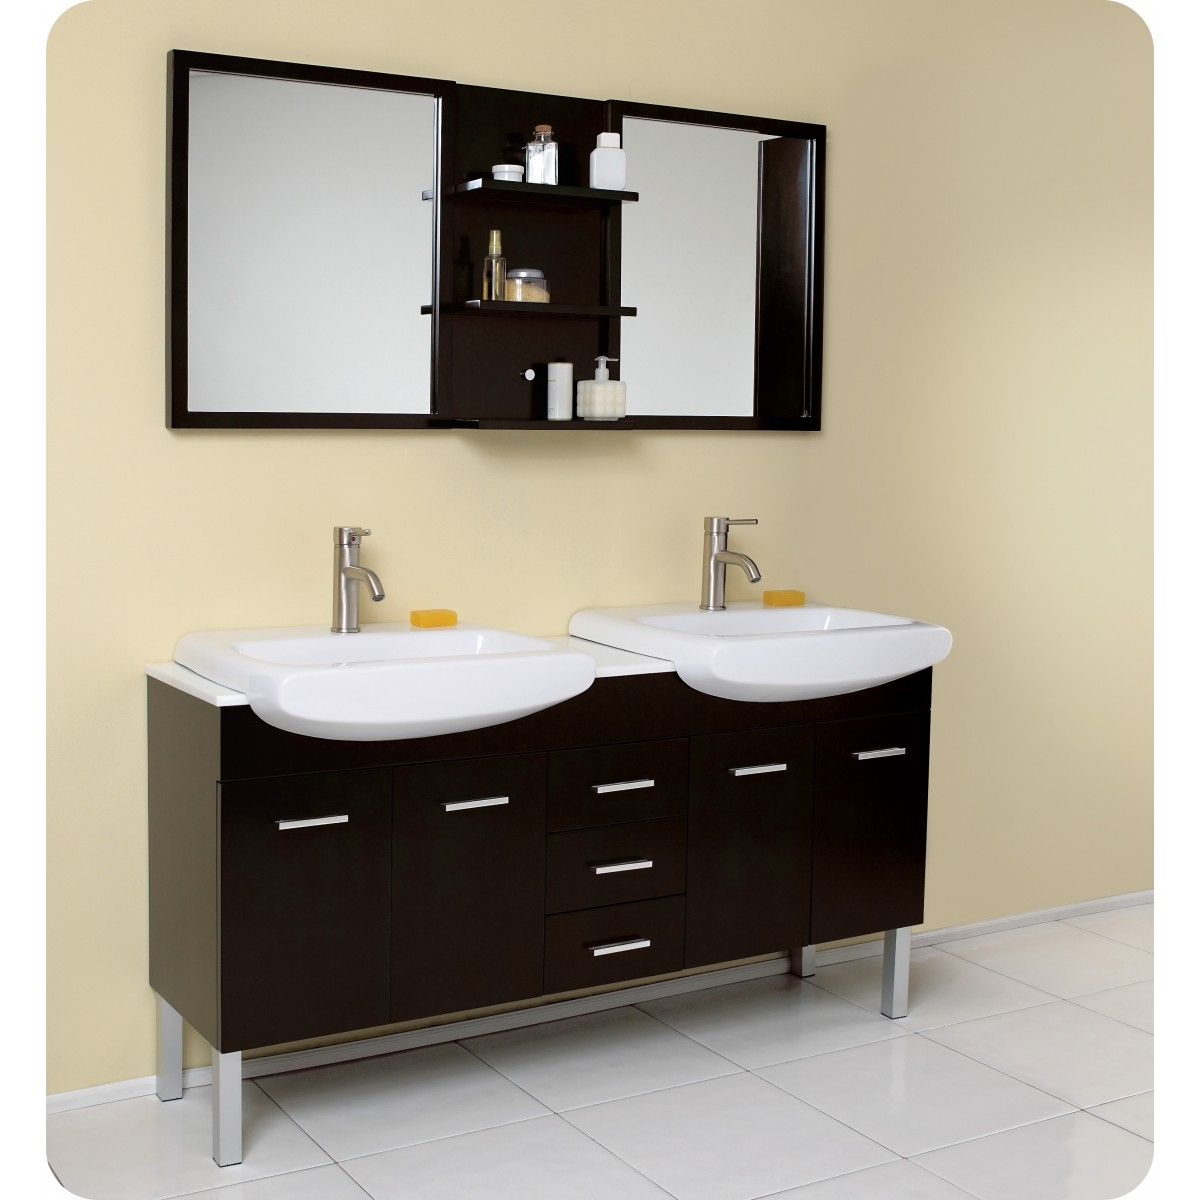 Large Espresso Bathroom Mirror